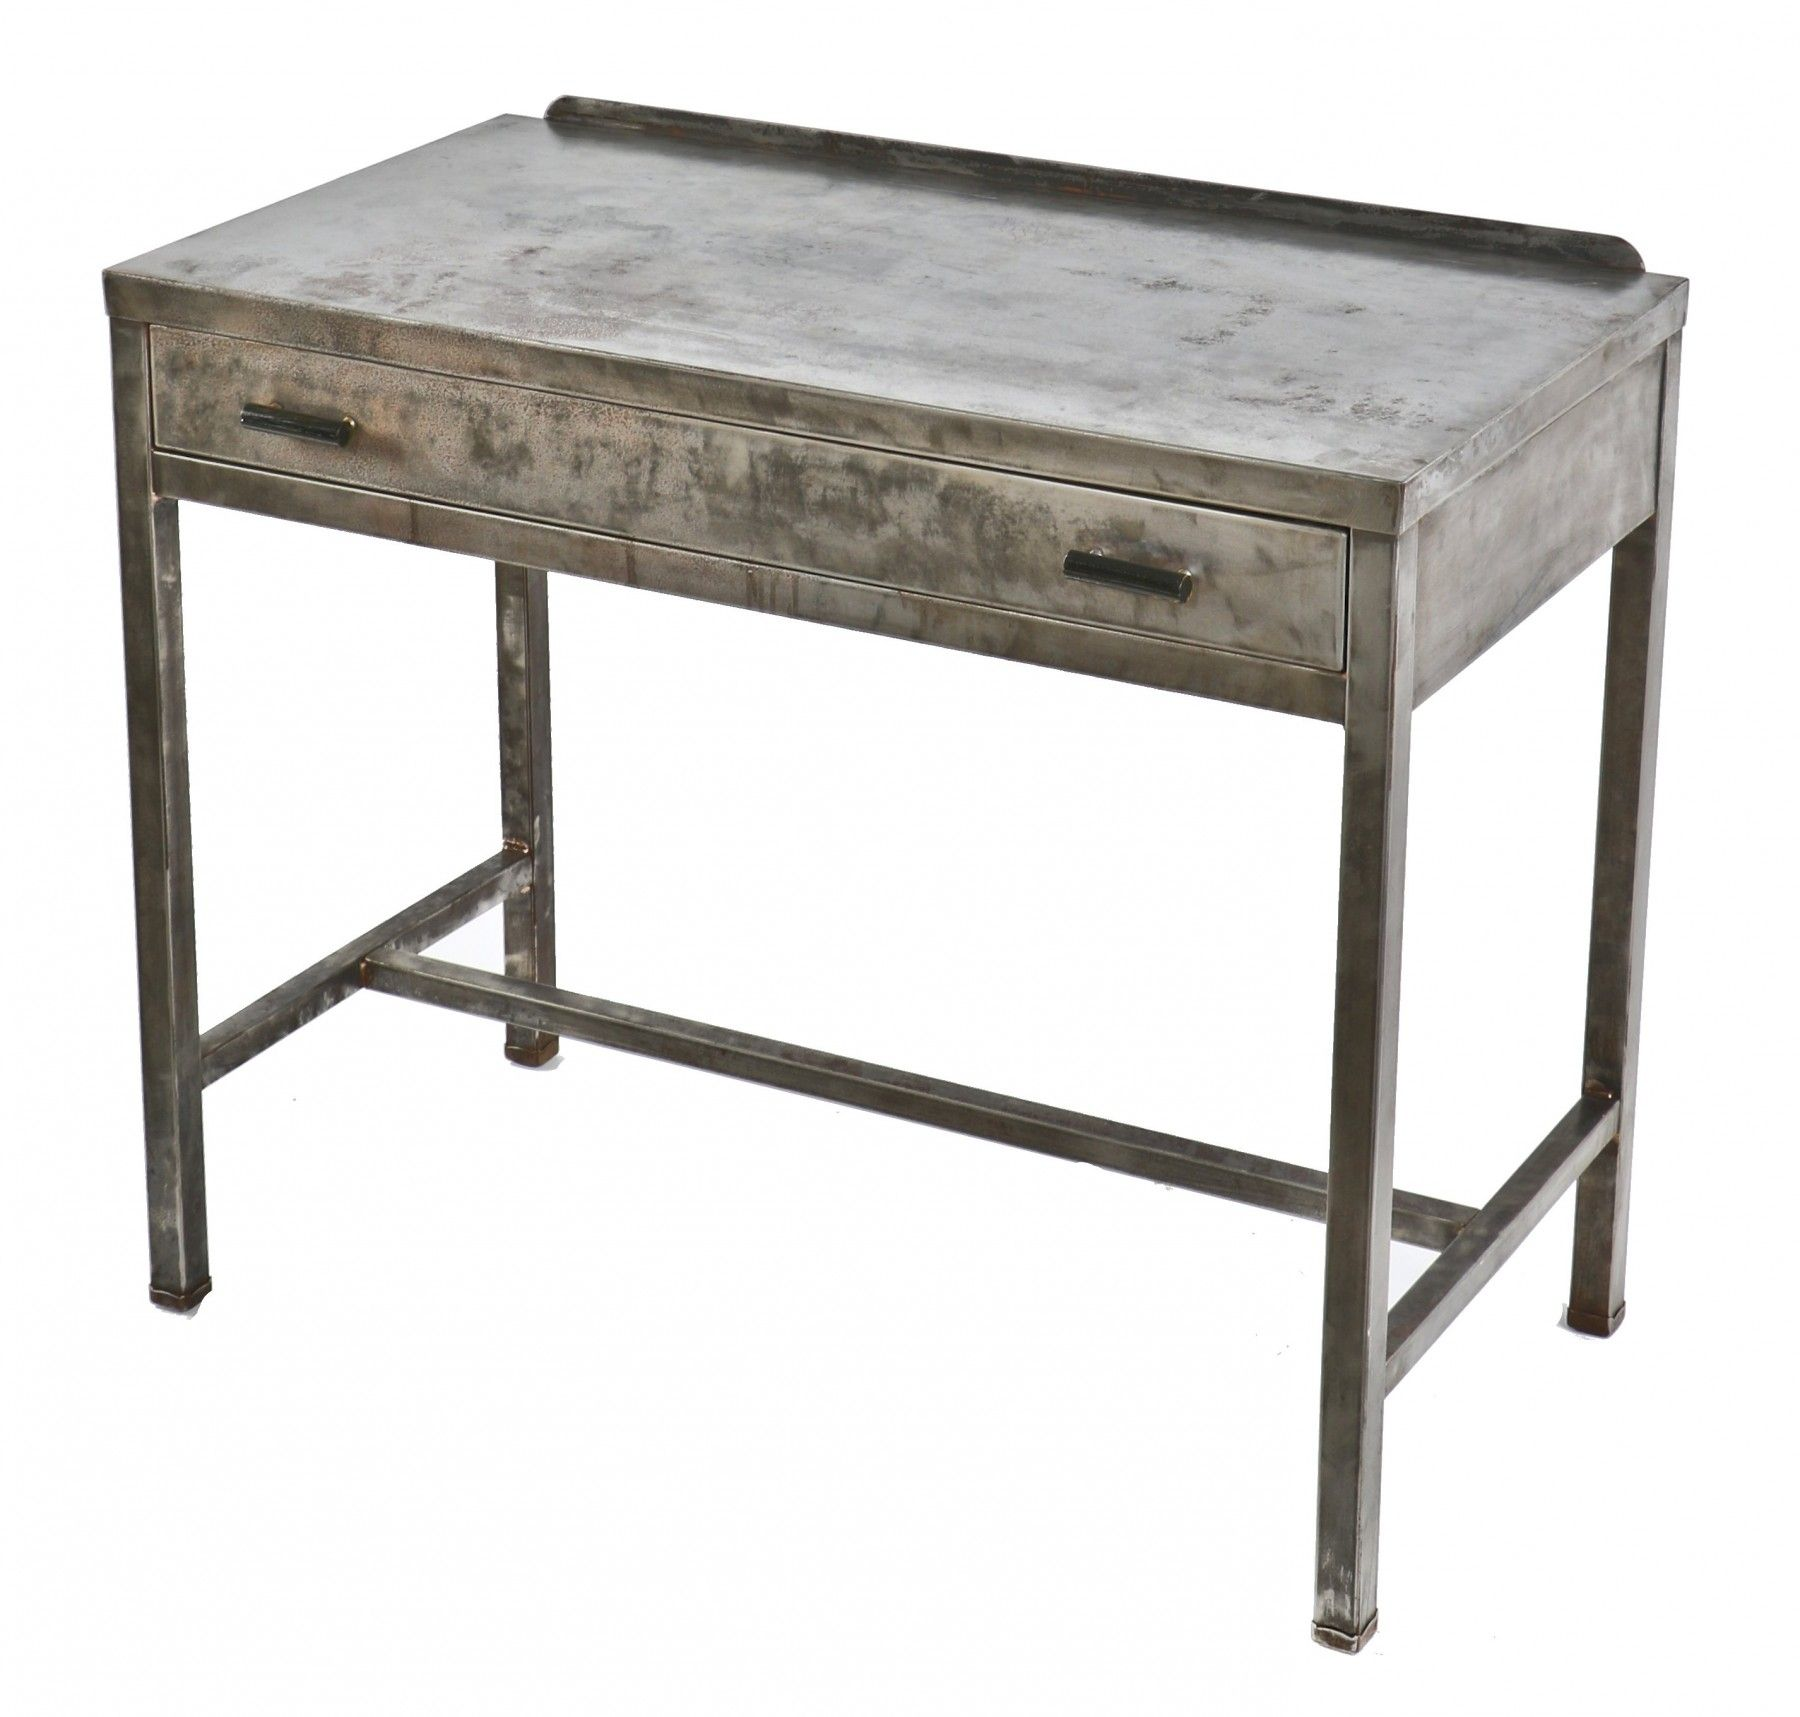 Refinished American Industrial Brushed Metal Simmons Single Drawer Hotel  Room Writing Desk With Original Cylindrical Shaped Drawer Pulls Or Handles